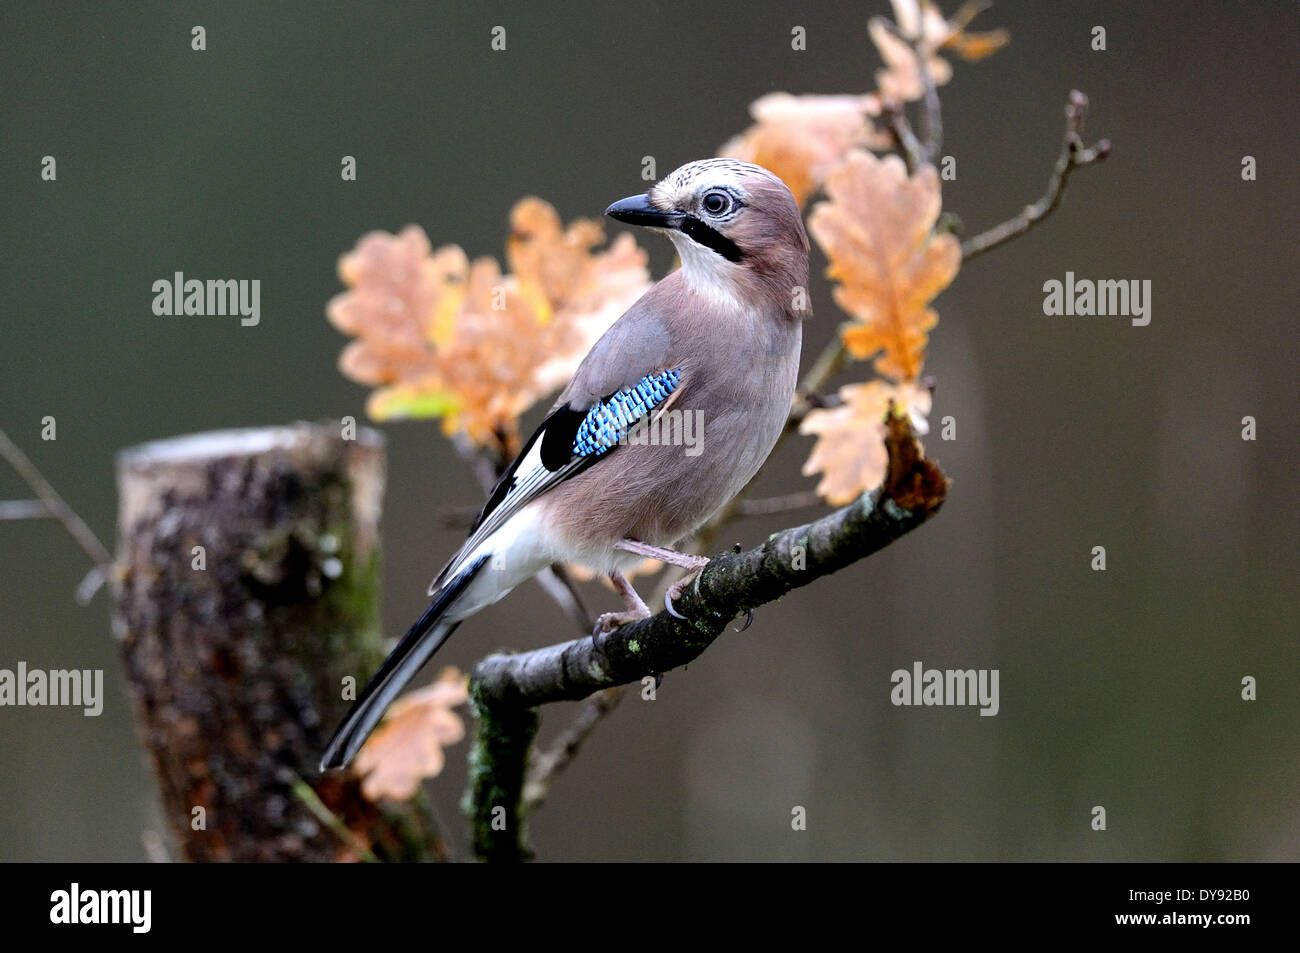 Jay, songbirds, passerines, corvids, Garrulus glandarius, birds, bird, autumn, animal, animals, Germany, Europe, - Stock Image